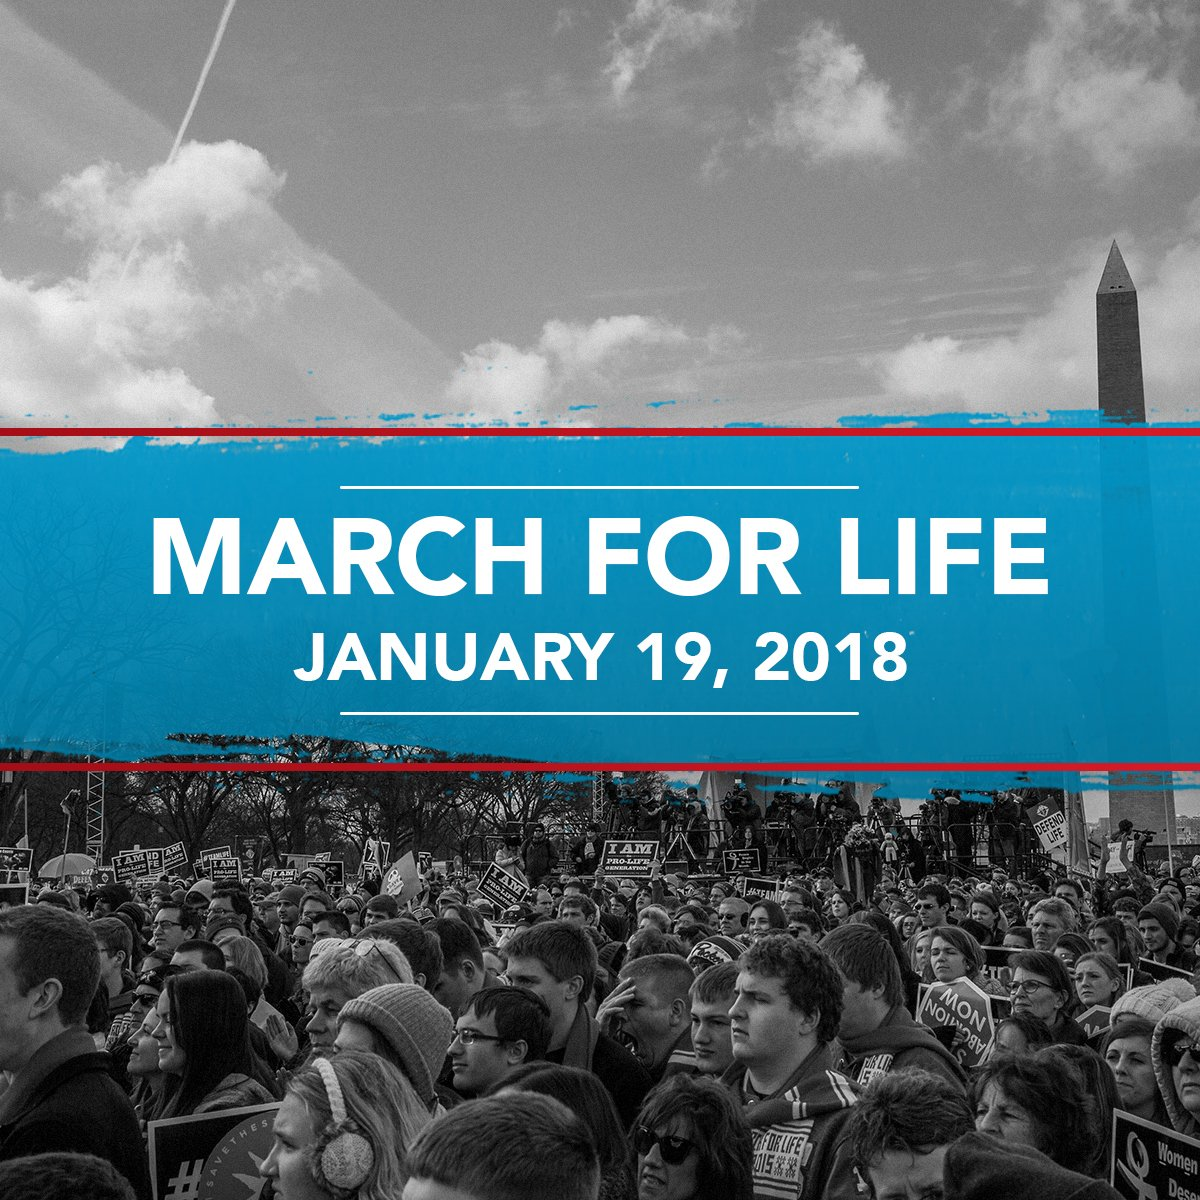 We stand for life. RT if you do too. #WhyWeMarch #MarchForLife